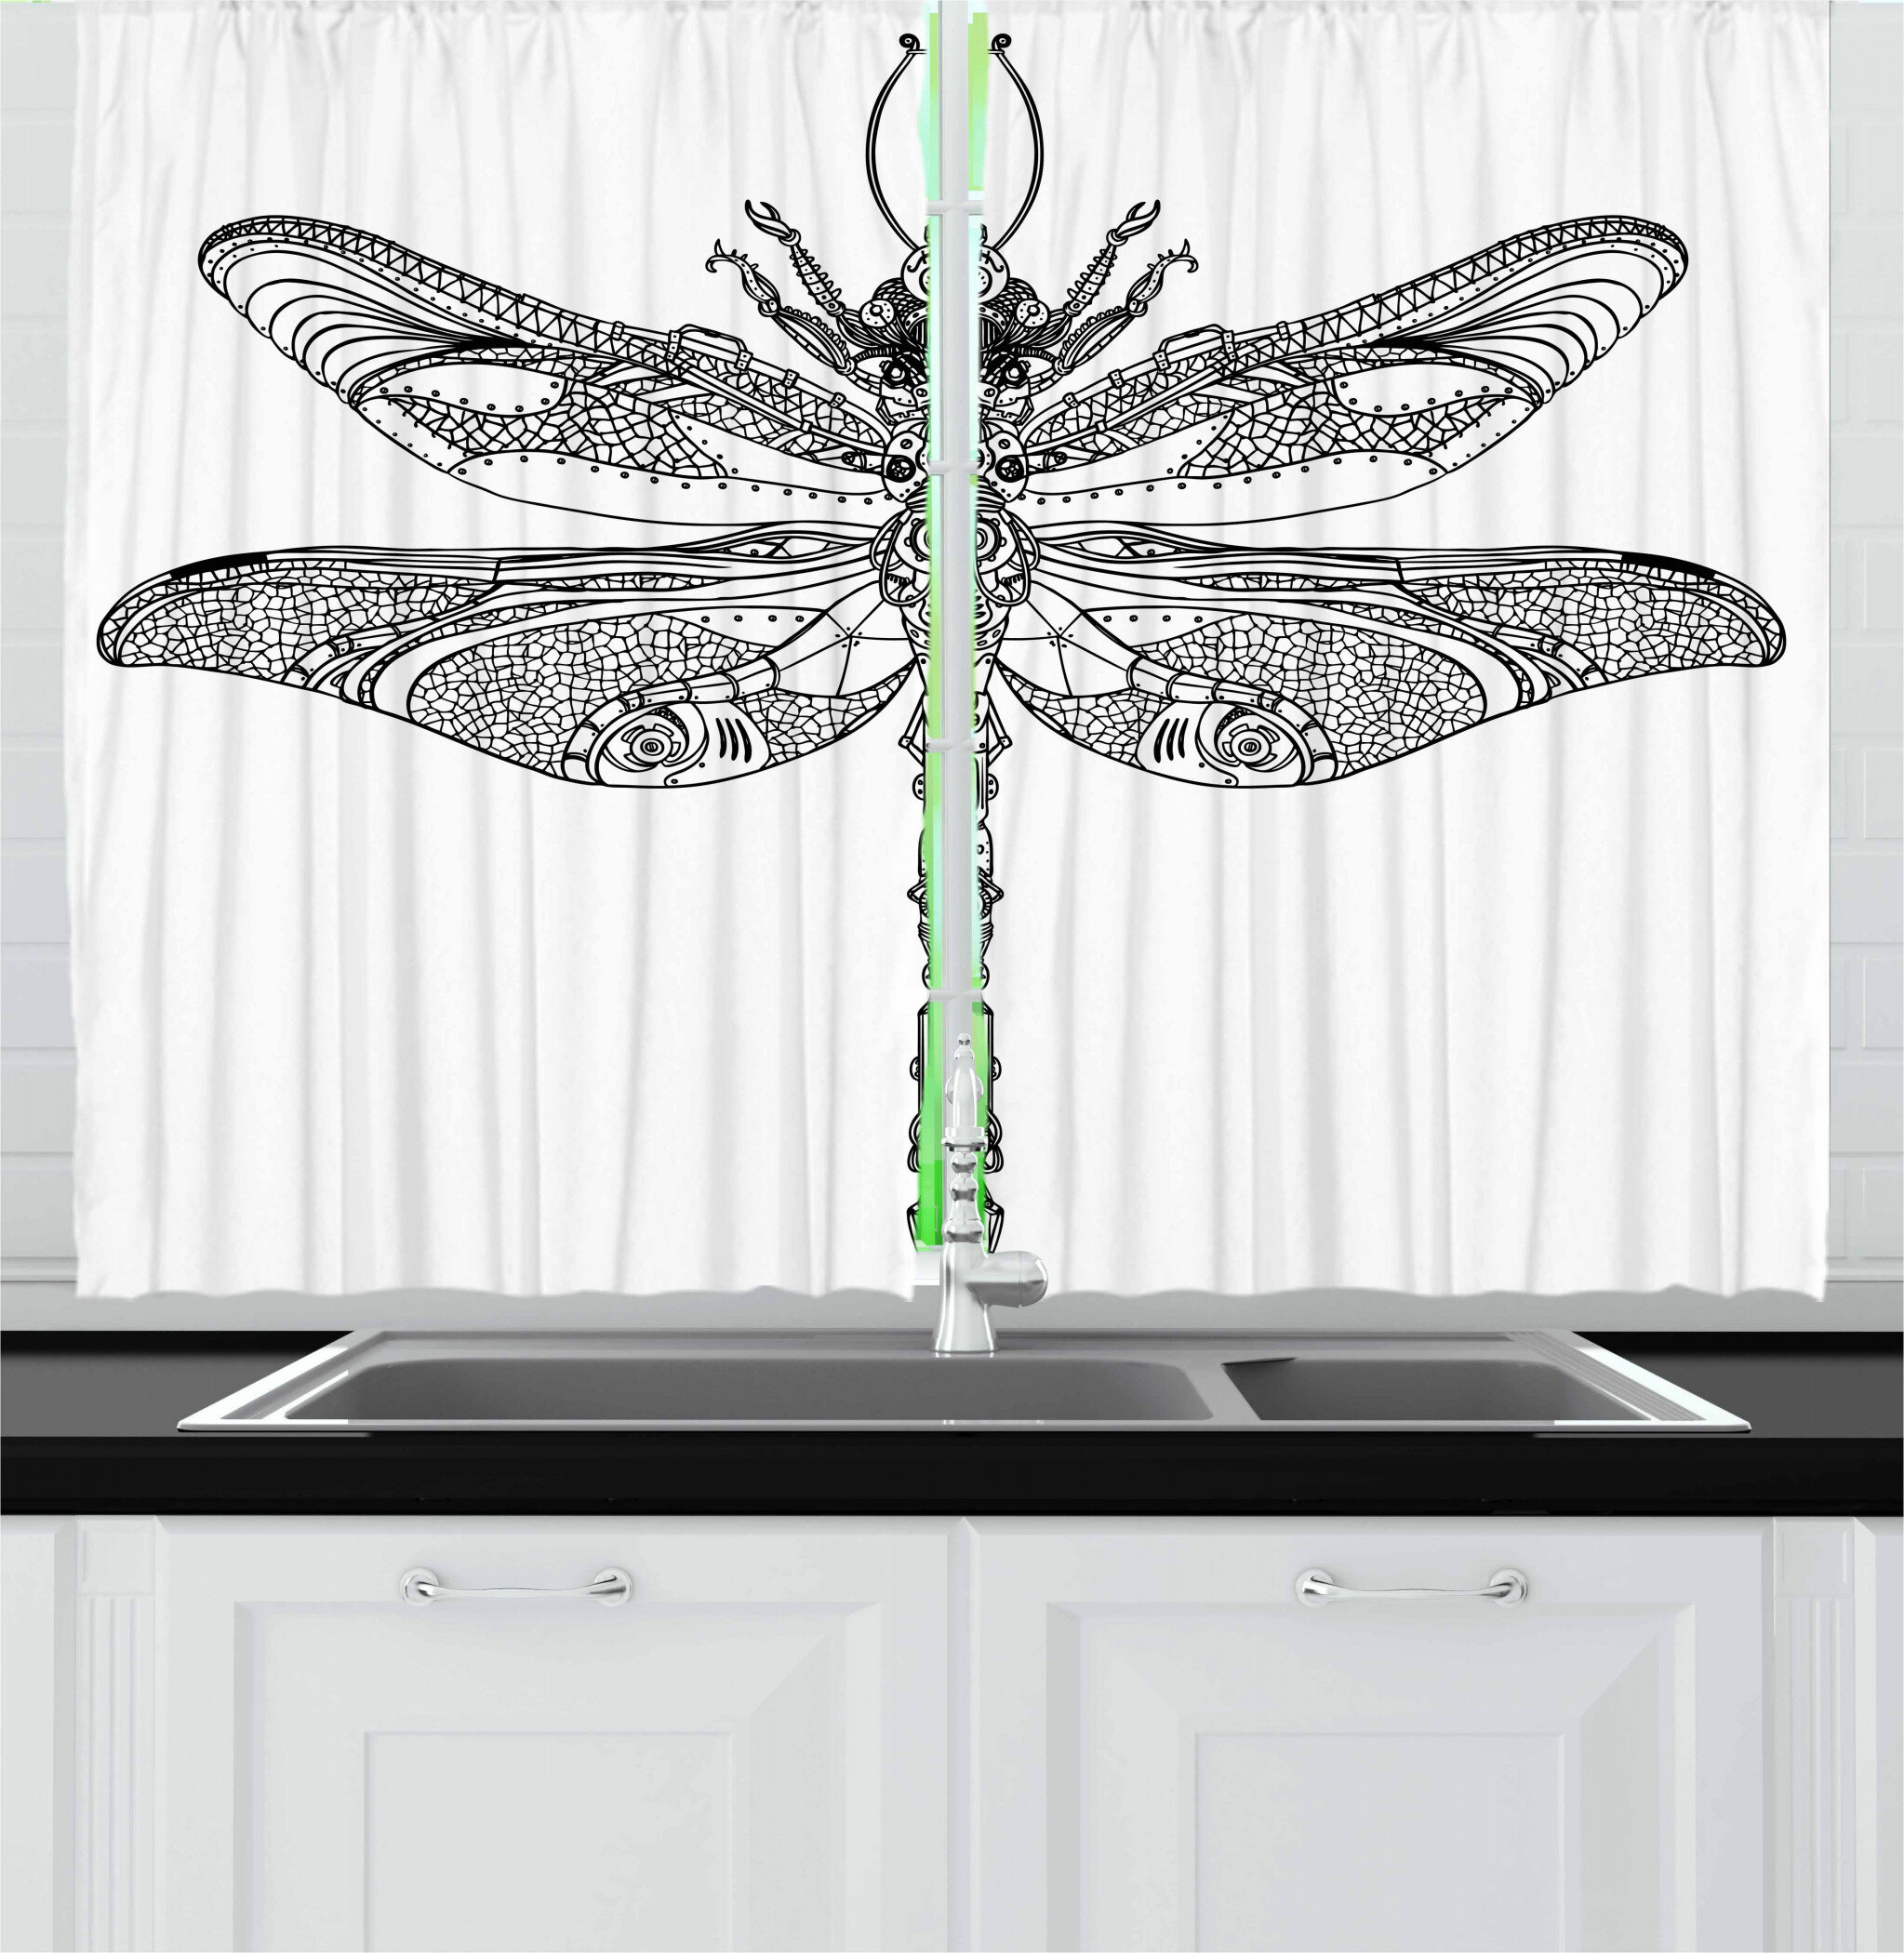 East Urban Home 2 Piece Dragonfly Baroque Patterned Ornamental Dragonfly Old Fashion Bug Design Kitchen Curtain Wayfair